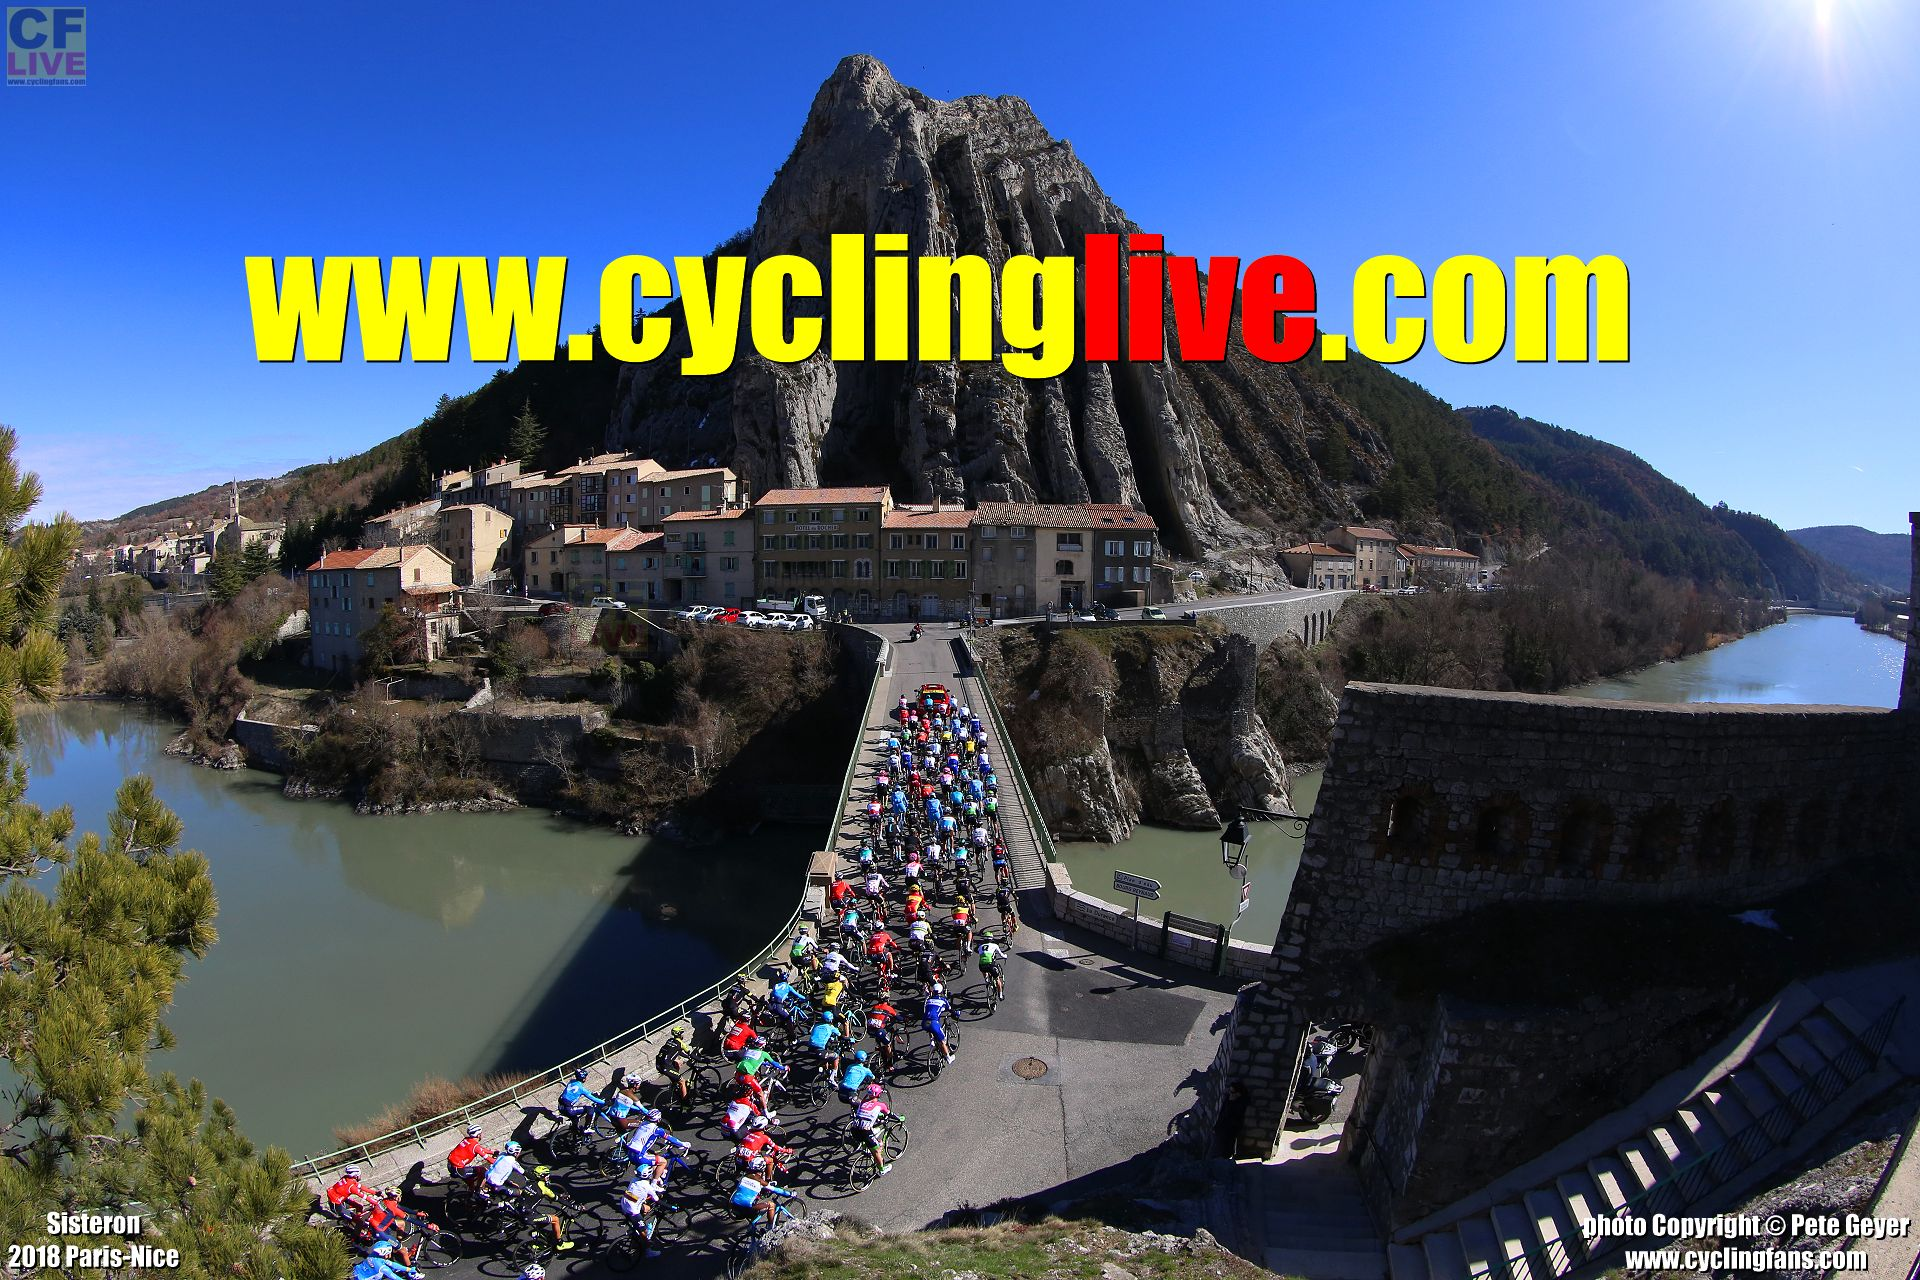 www.cyclinglive.com